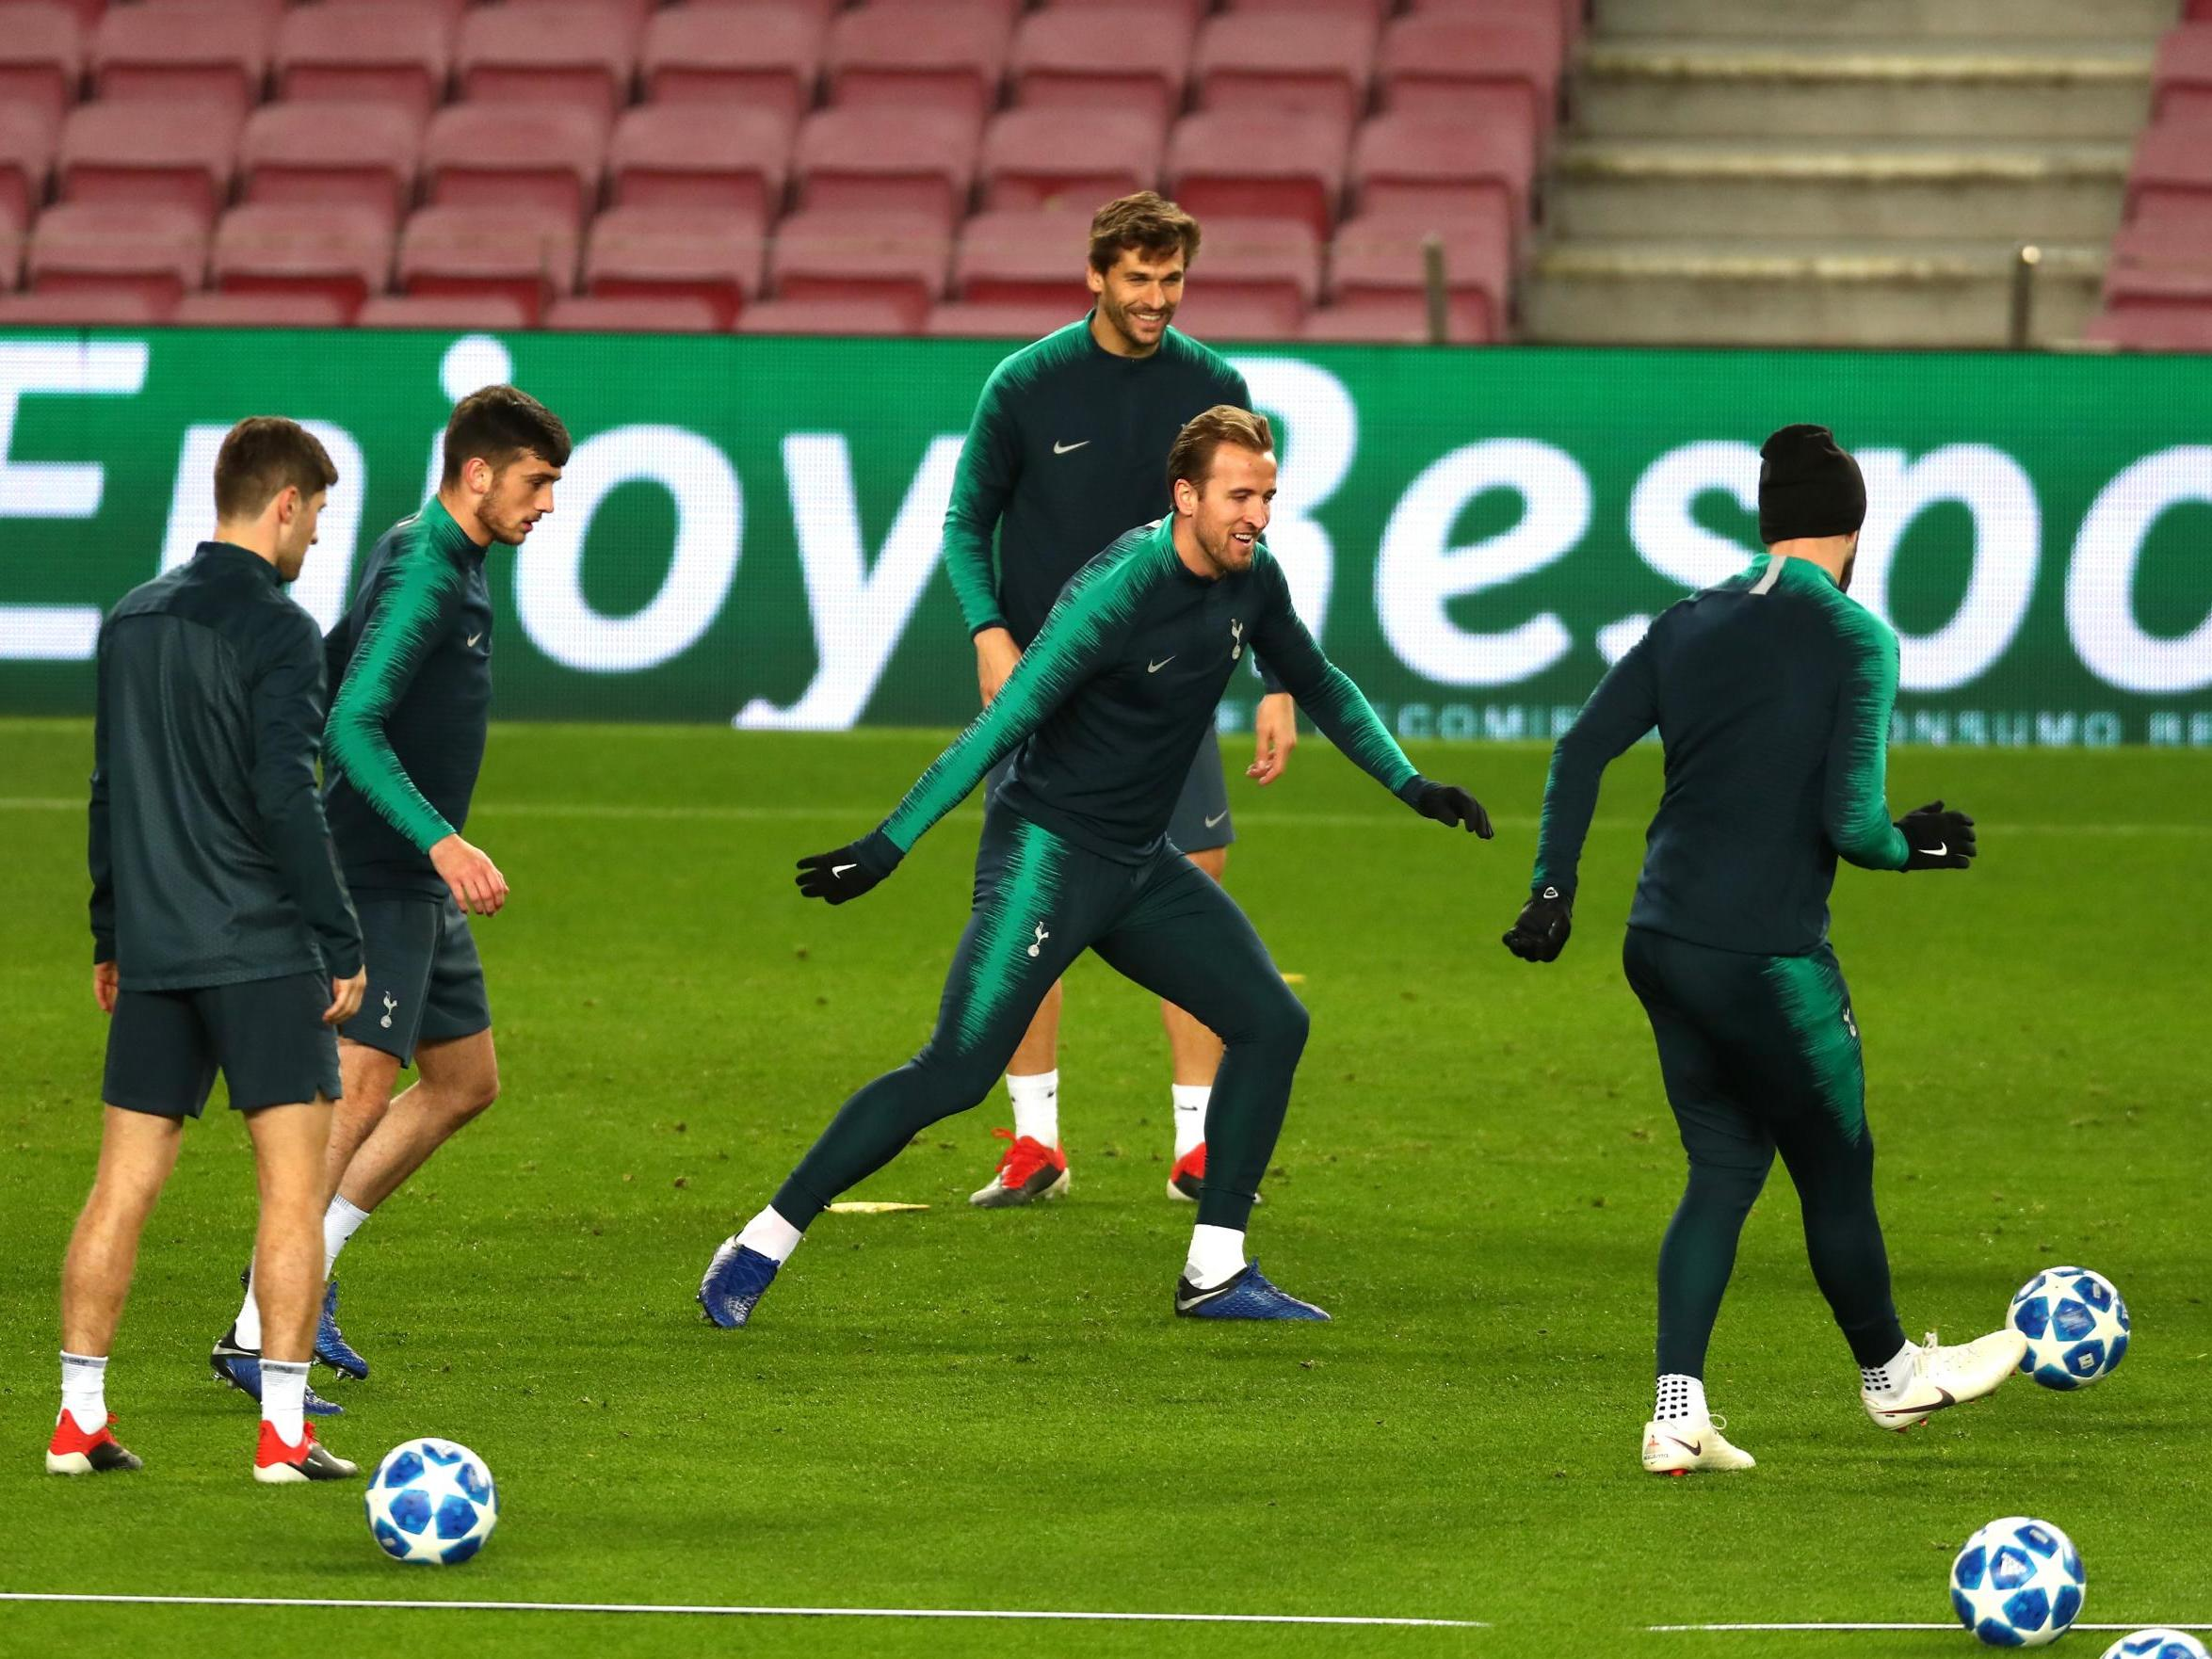 Barcelona vs Tottenham LIVE – Champions League latest updates, team news, prediction, odds, how to watch on TV and stream online